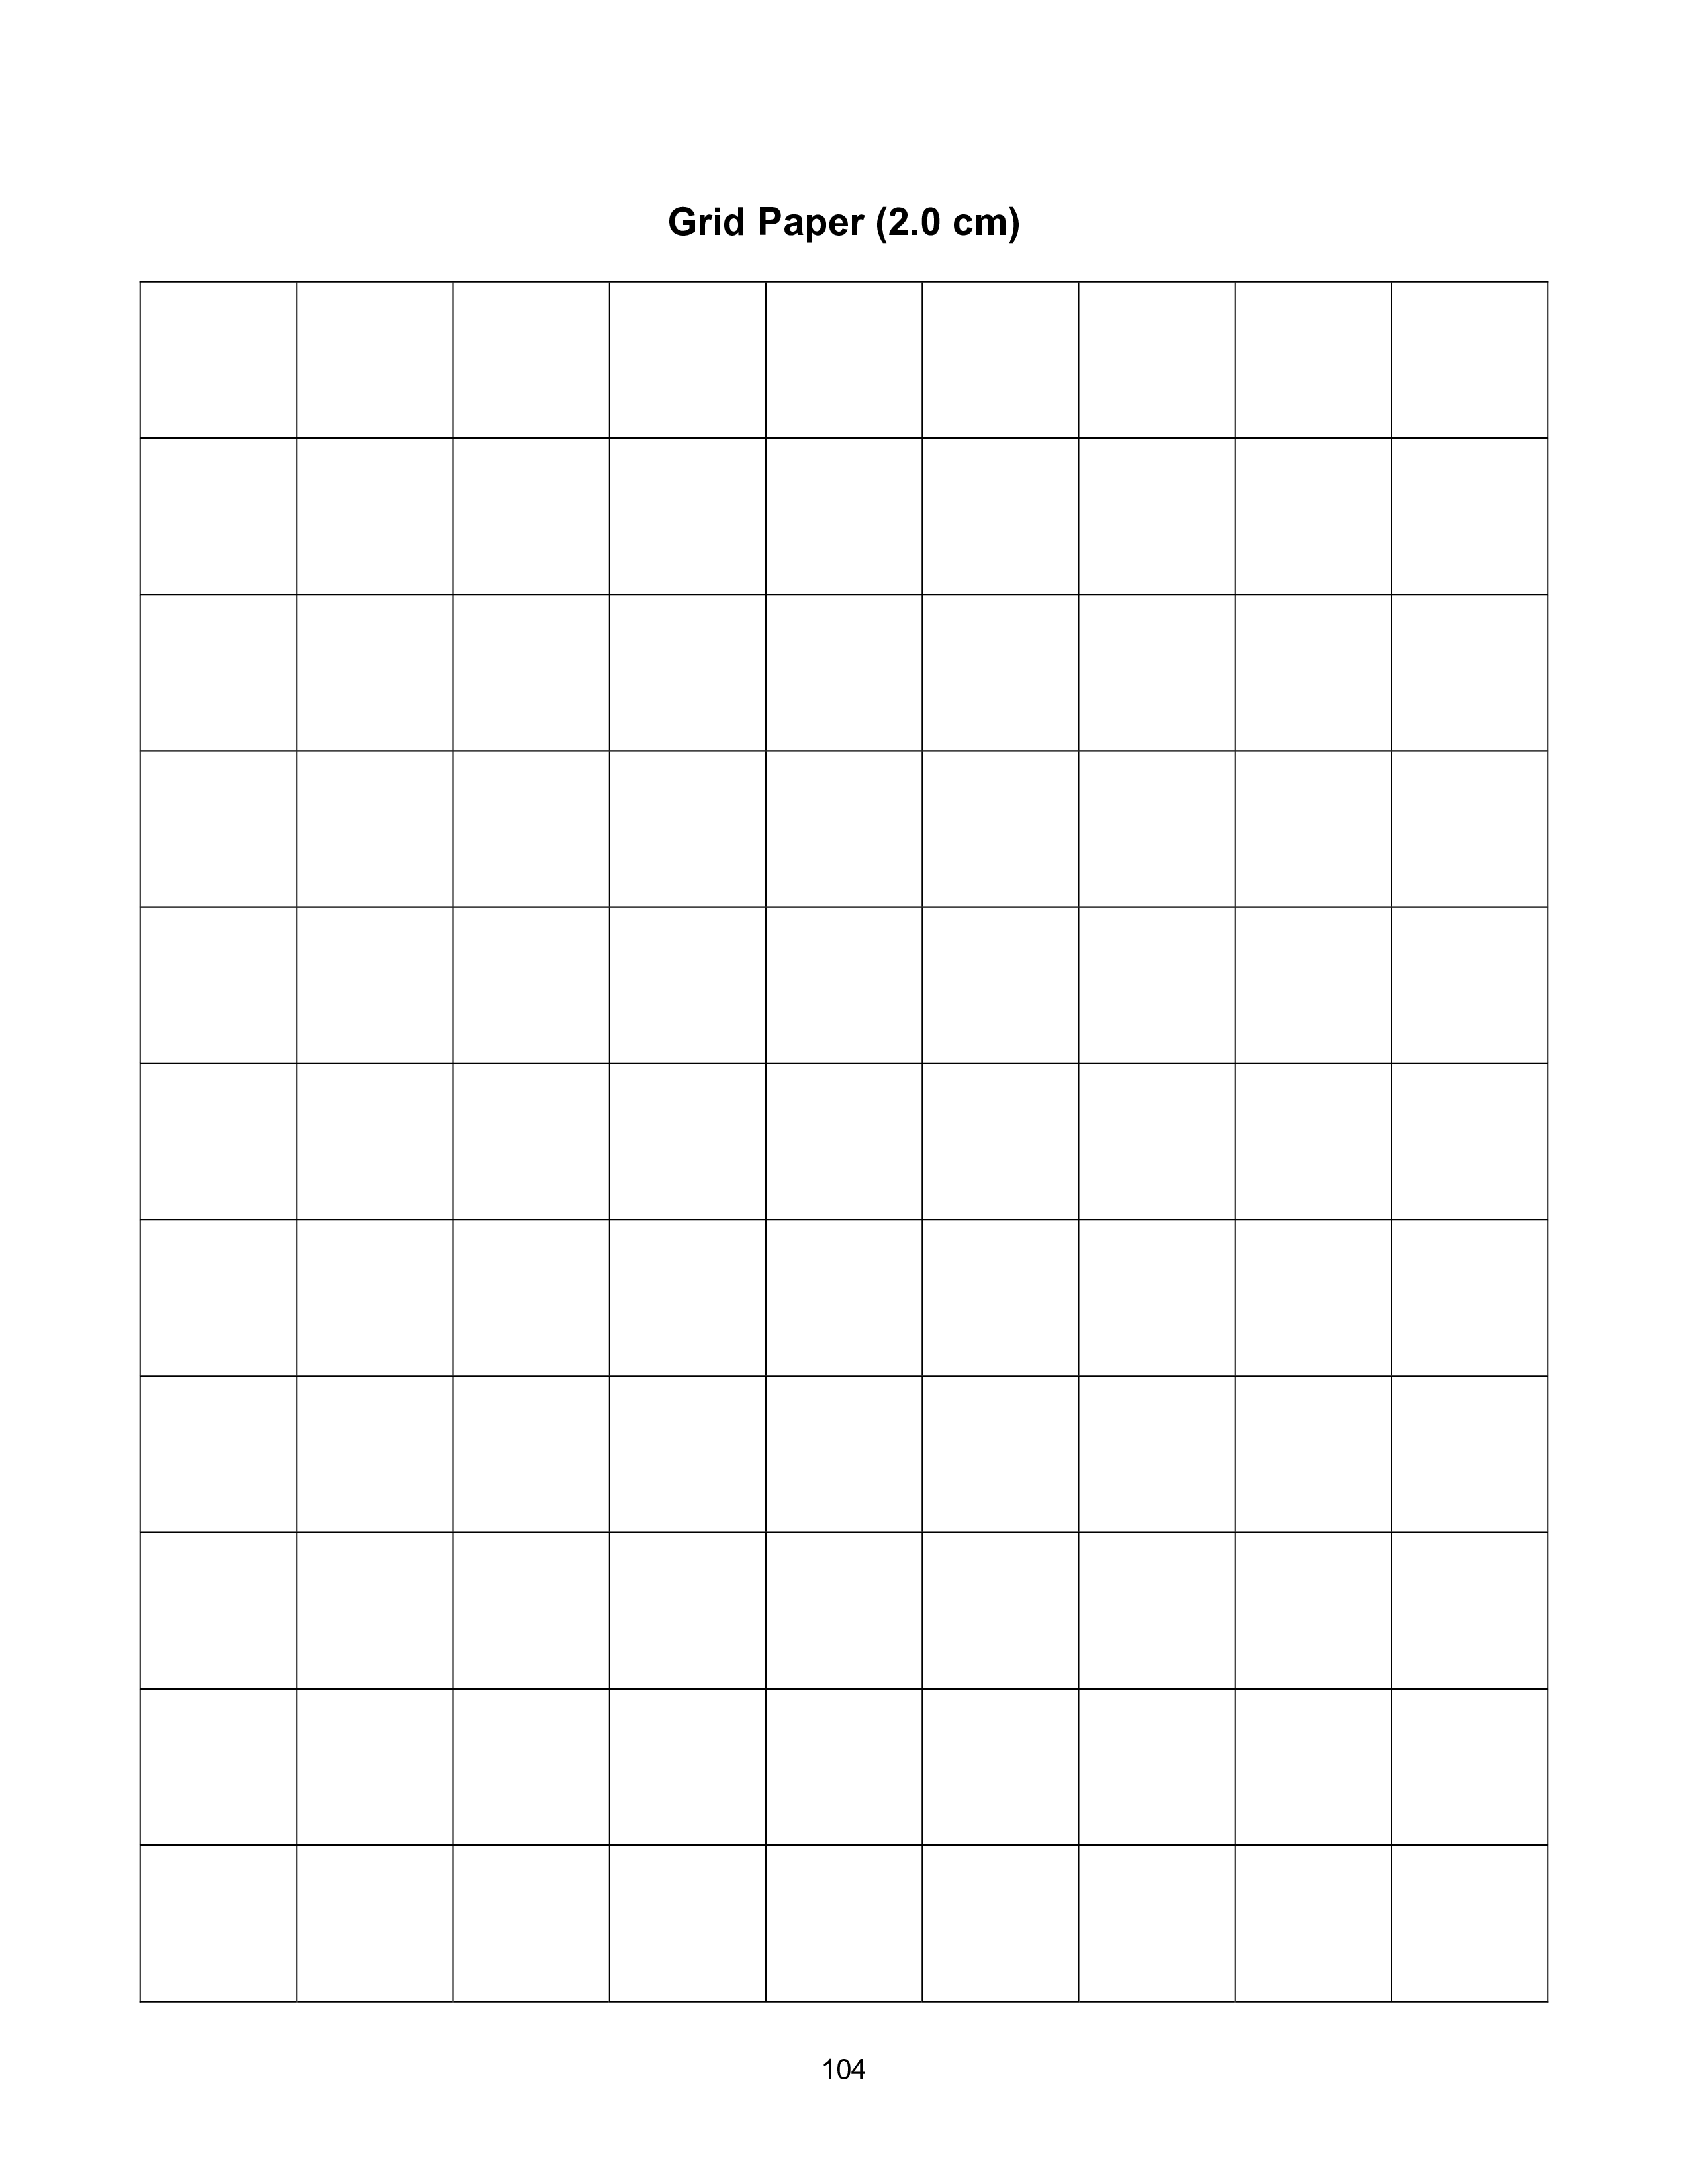 Printable Square Grid Paper